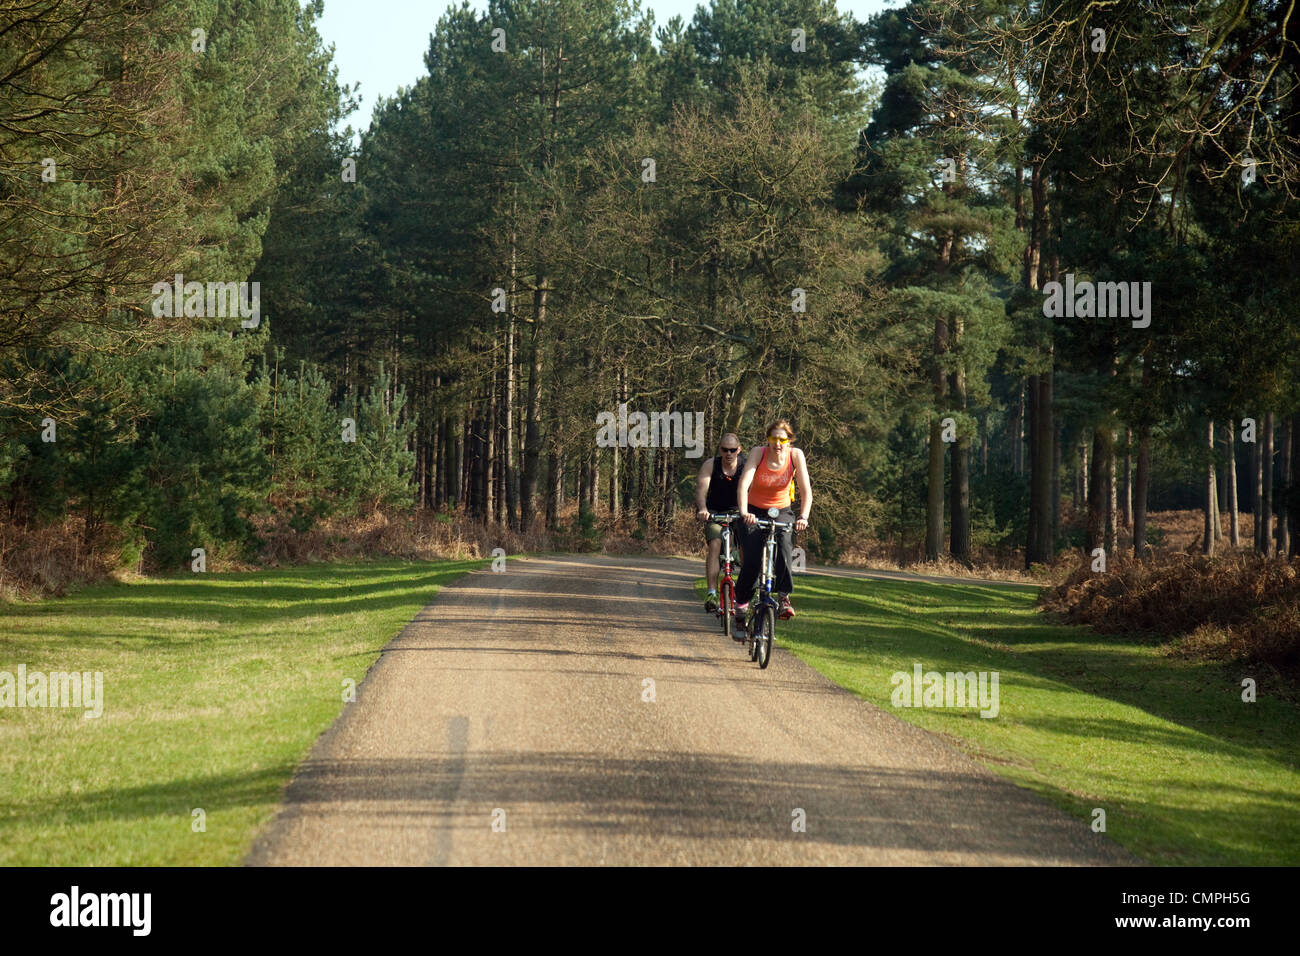 A couple cycling on the road in Thetford Forest, Norfolk UK - Stock Image